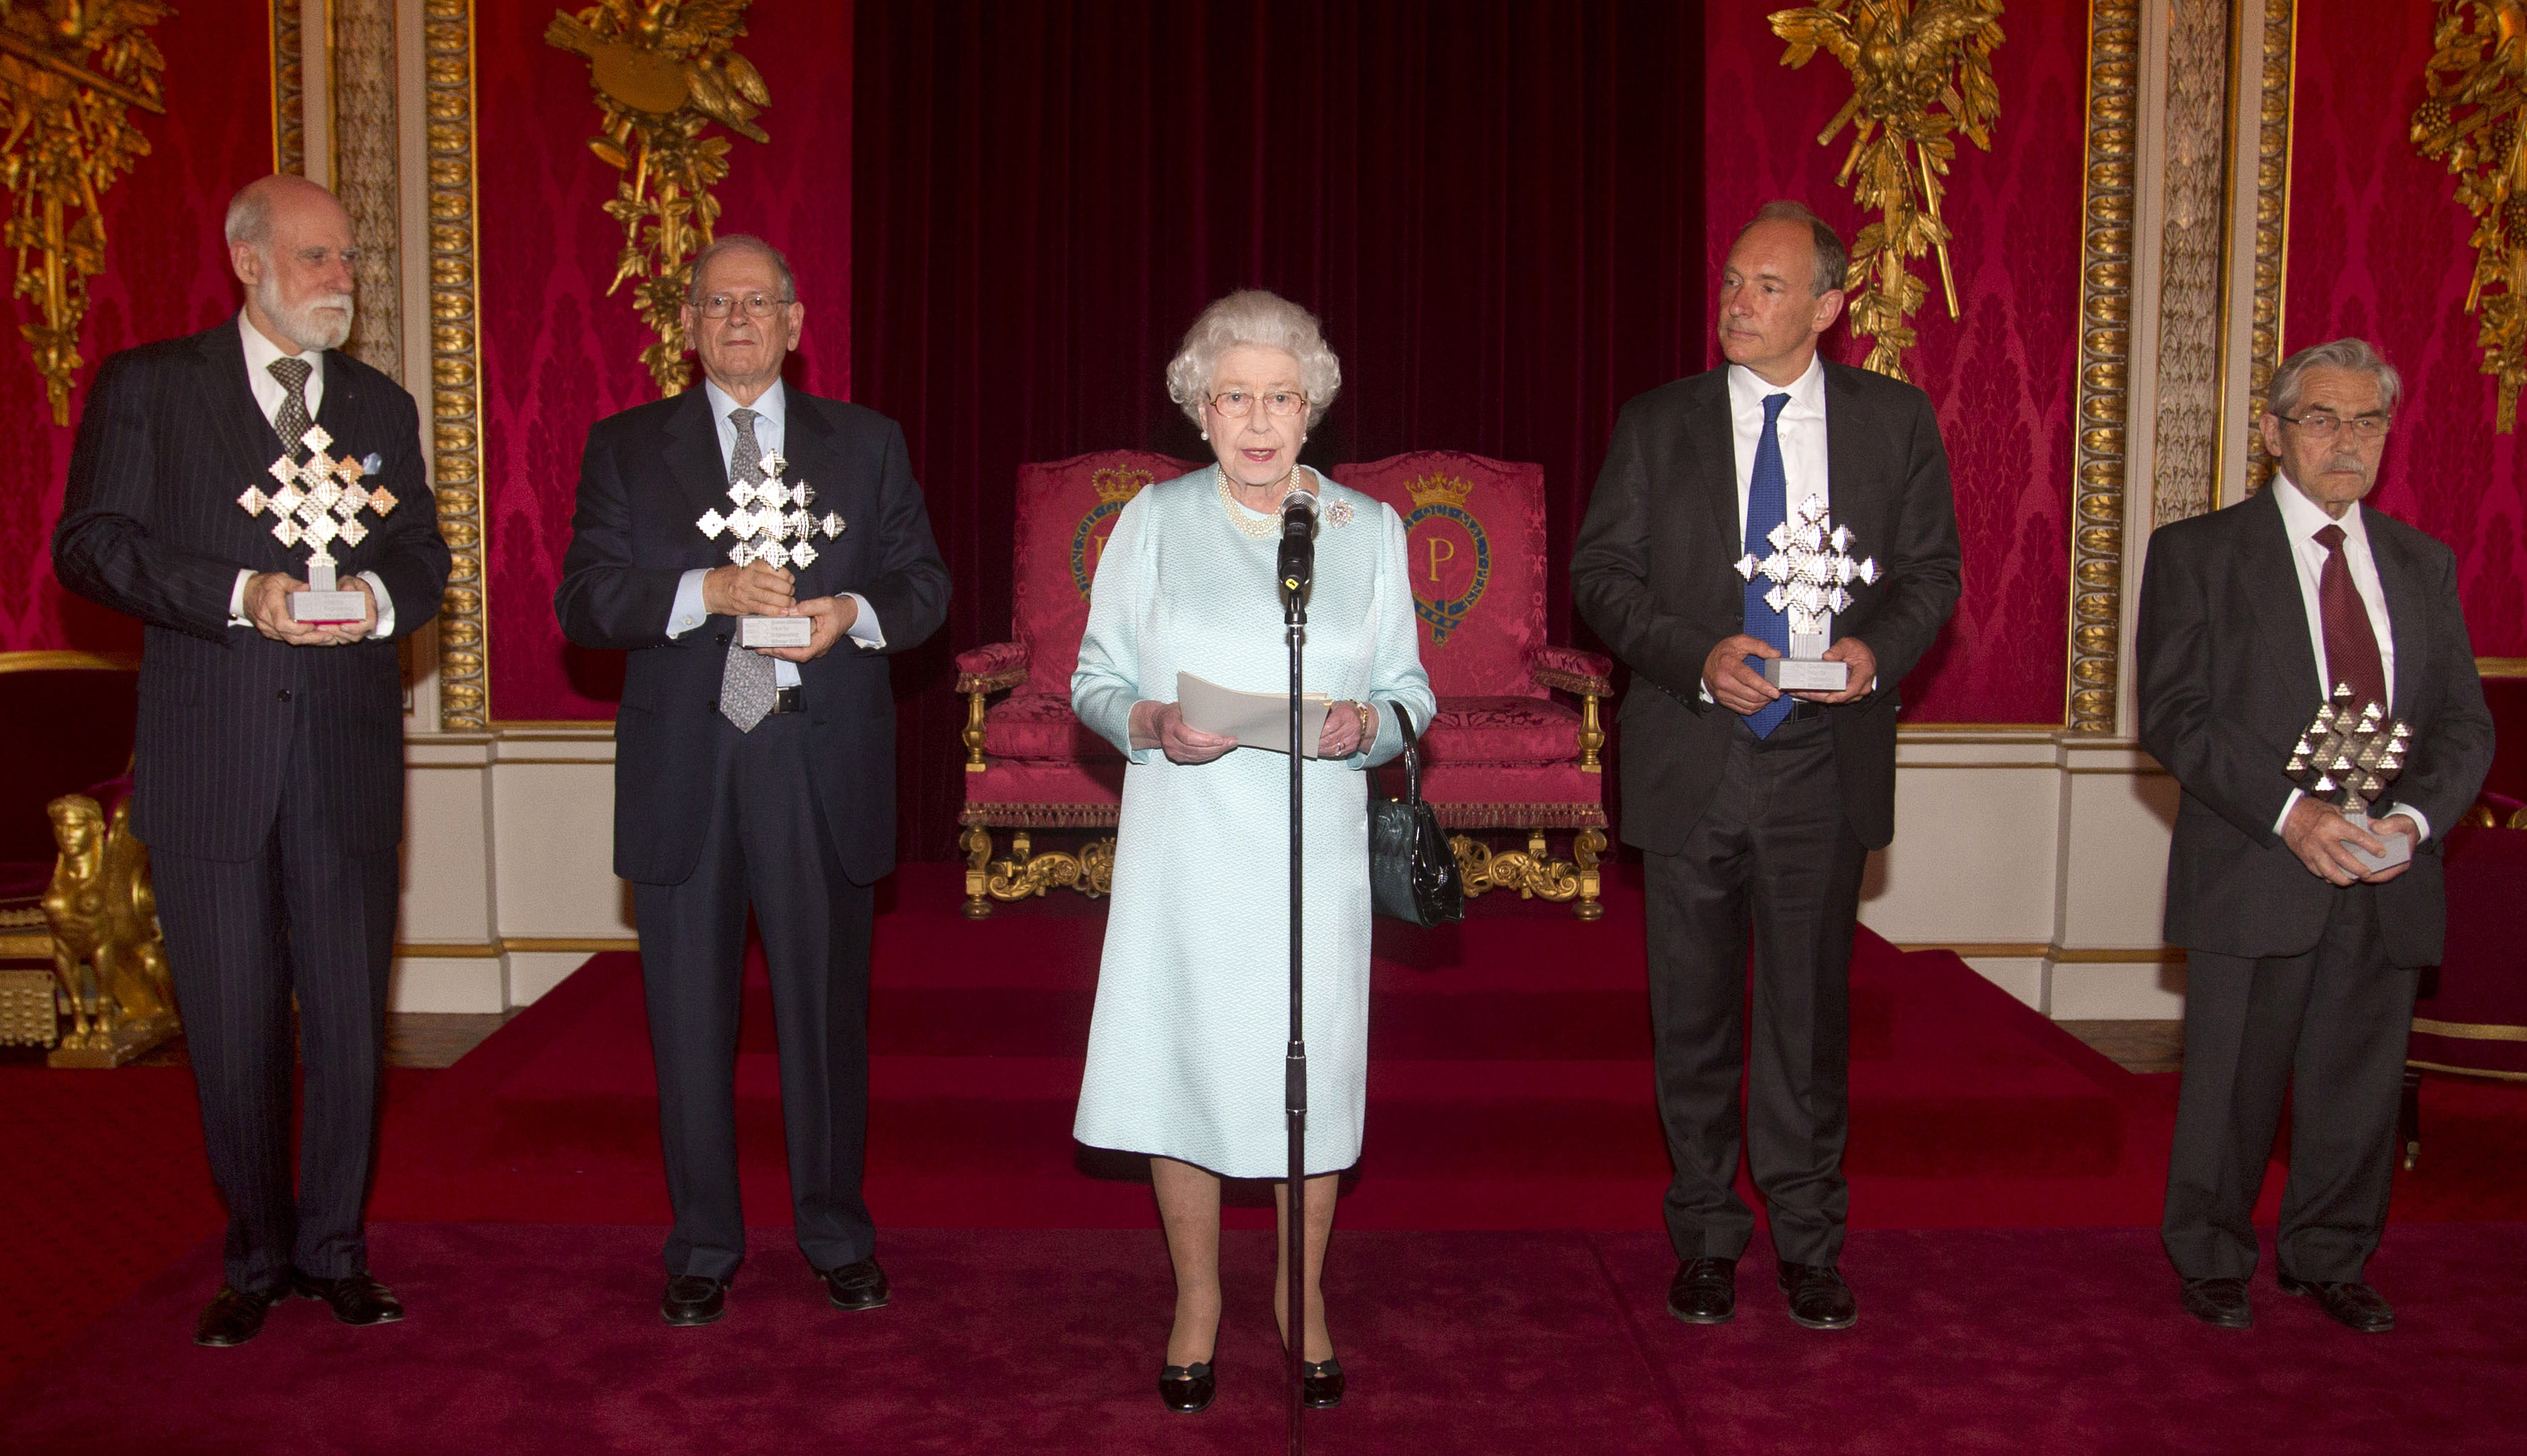 IMAGE DISTRIBUTED FOR QUEEN ELIZABETH PRIZE FOR ENGINEERING - Britain's Queen Elizabeth II speaks in front of the winners of the Queen Elizabeth Prize for Engineering (QEPrize) at Buckingham Palace, London, on Tuesday, June 25, 2013. The five prize winners were the leading lights in the creation of the Internet and the world wide web. Pictured from left; Vint Cerf, Robert Kahn, Tim Berners-Lee and Louis Pouzin hold their awards. US engineer Marc Andreesen was unable to attend the prize giving. The Queen Elizabeth Prize for Engineering (QEPrize) is a new global engineering prize rewarding and celebrating an individual or group responsible for a ground-breaking innovation in engineering that has been of global benefit to humanity. The winners share the 1 million pound (US$1.6 million or 1.16 million euro) prize money. (Lewis Whyld/QEPrize via AP Images)